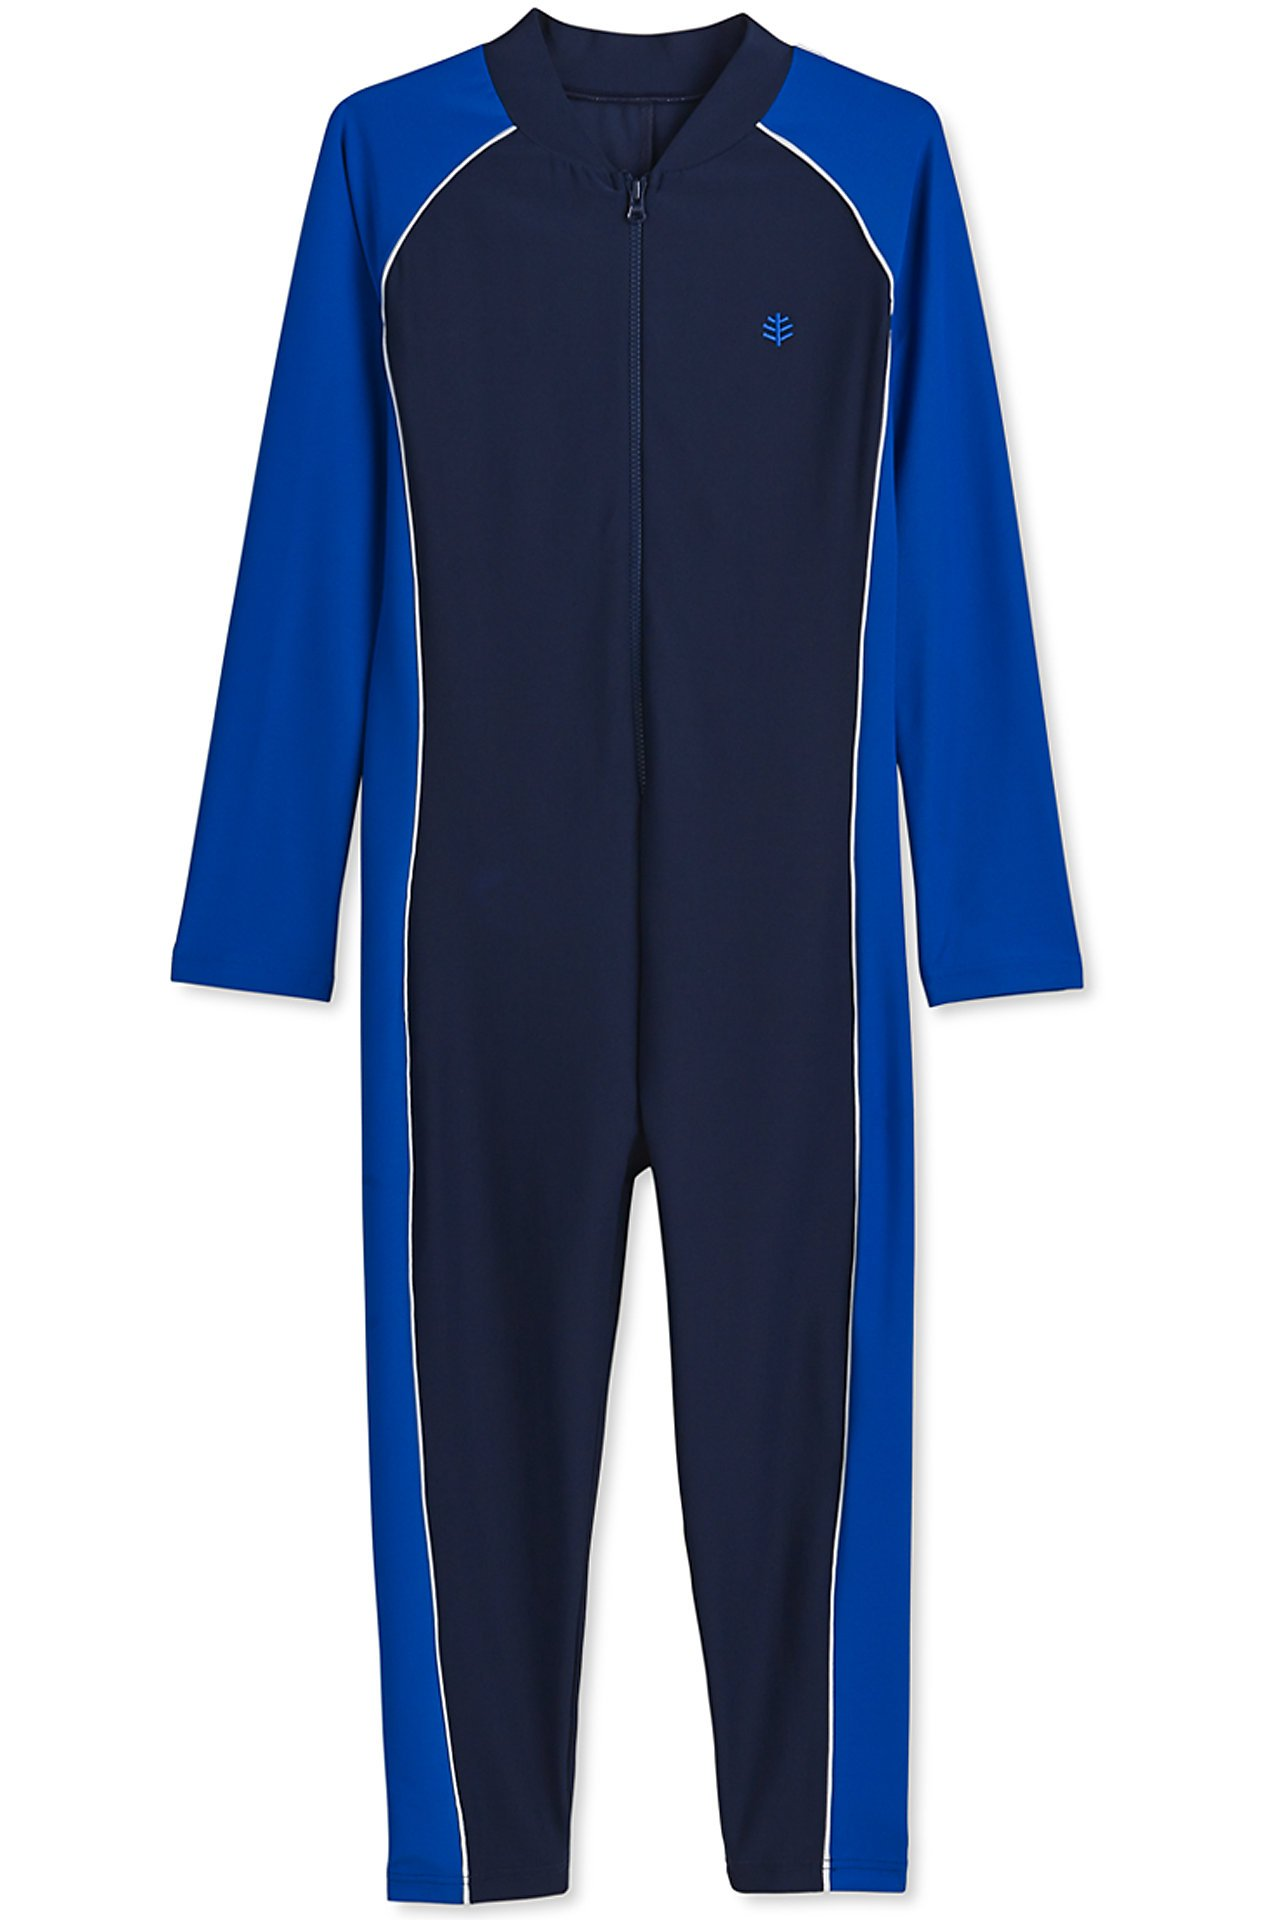 Coolibar UPF 50+ Kids' Neck-to-Ankle Surf Suit - Sun Protective